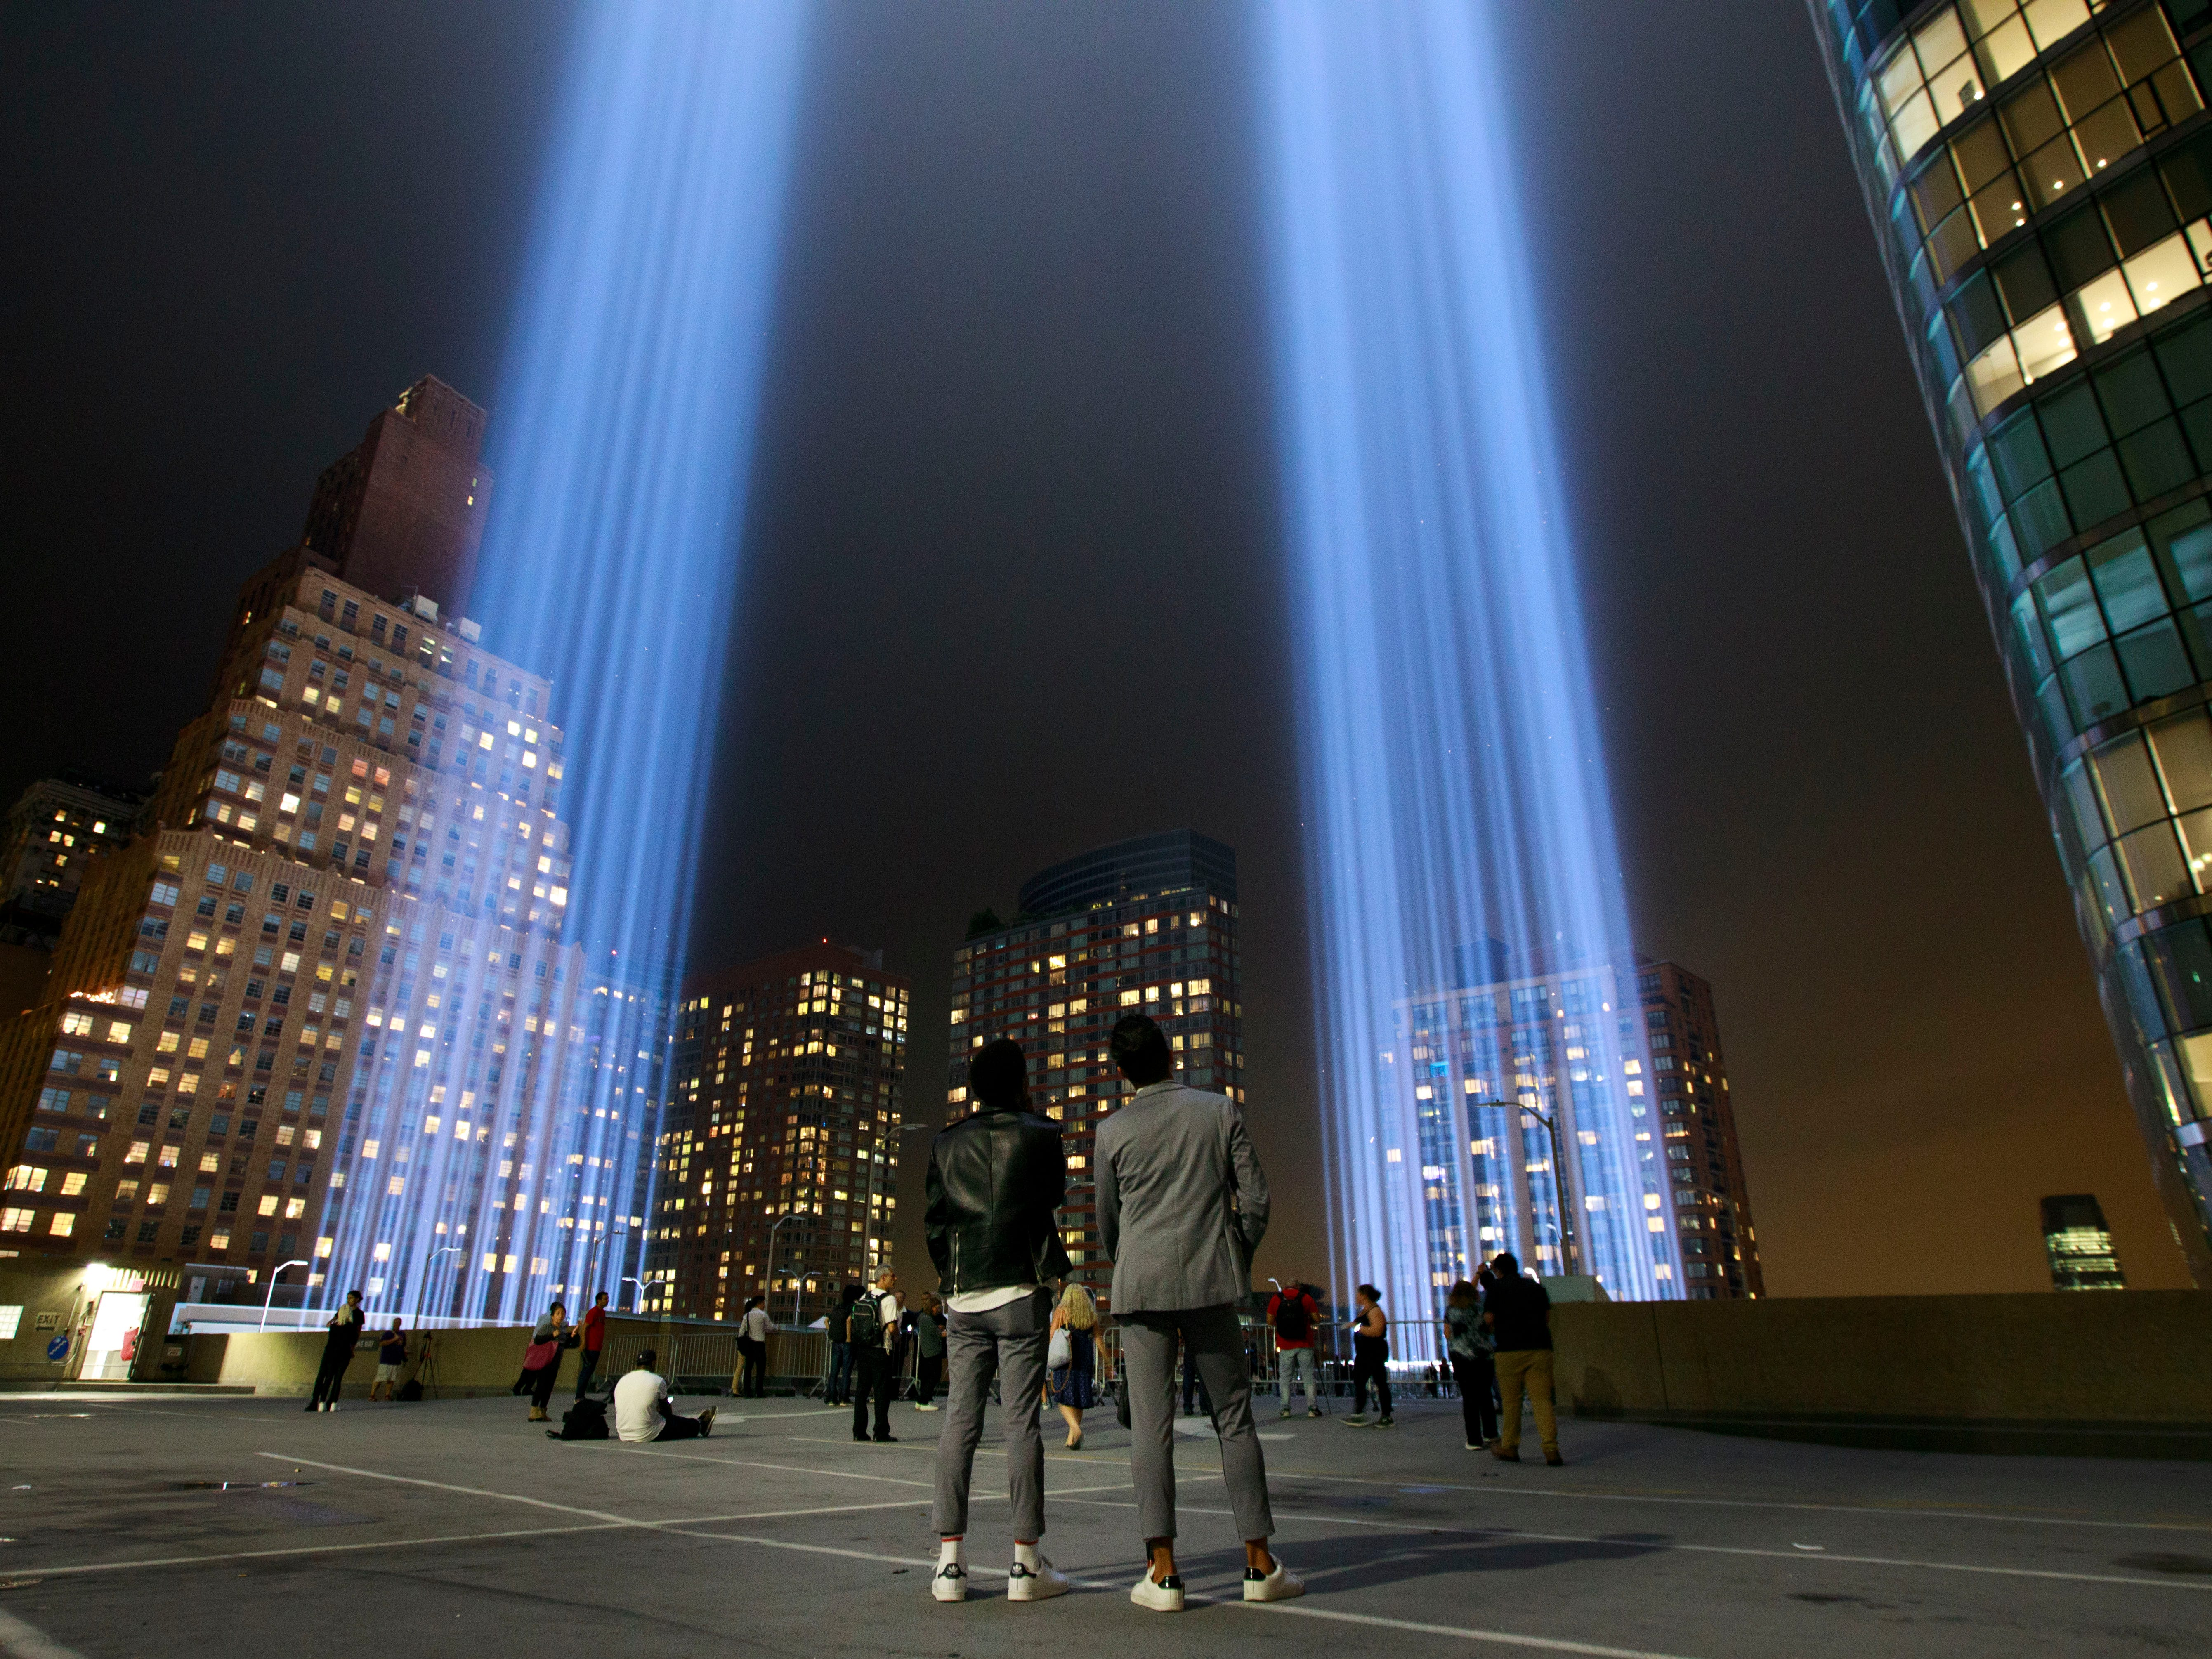 People observe the 'Tribute in Light' atop the Battery Parking Garage as it rises skyward in Lower Manhattan, September 11, 2018 in New York City. In New York City and throughout the United States, the country is marking the 17th anniversary of the September 11 terrorist attacks.